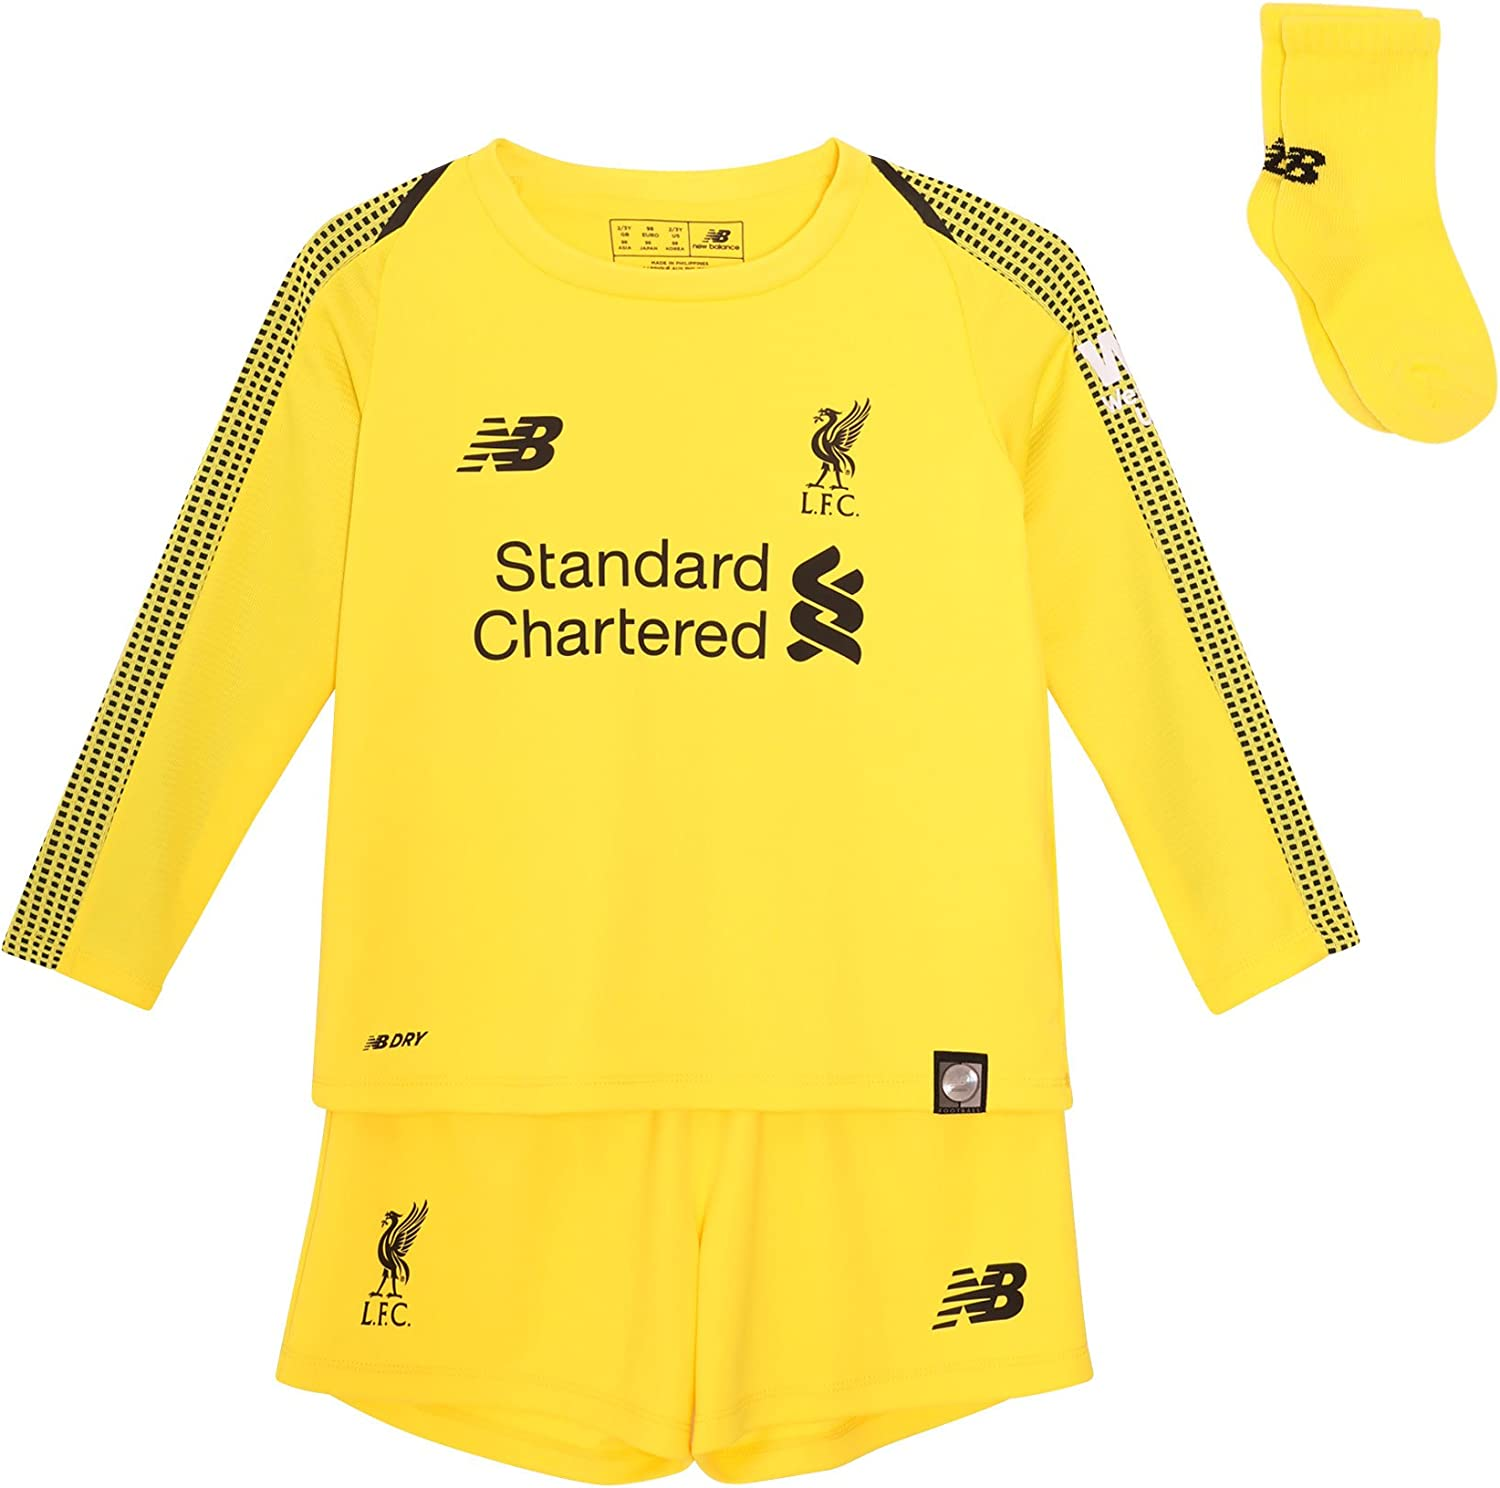 New Balance Liverpool FC Home Kit 2018 2019 Yellow Baby Soccer Goalkeeper Kit LFC Official Store